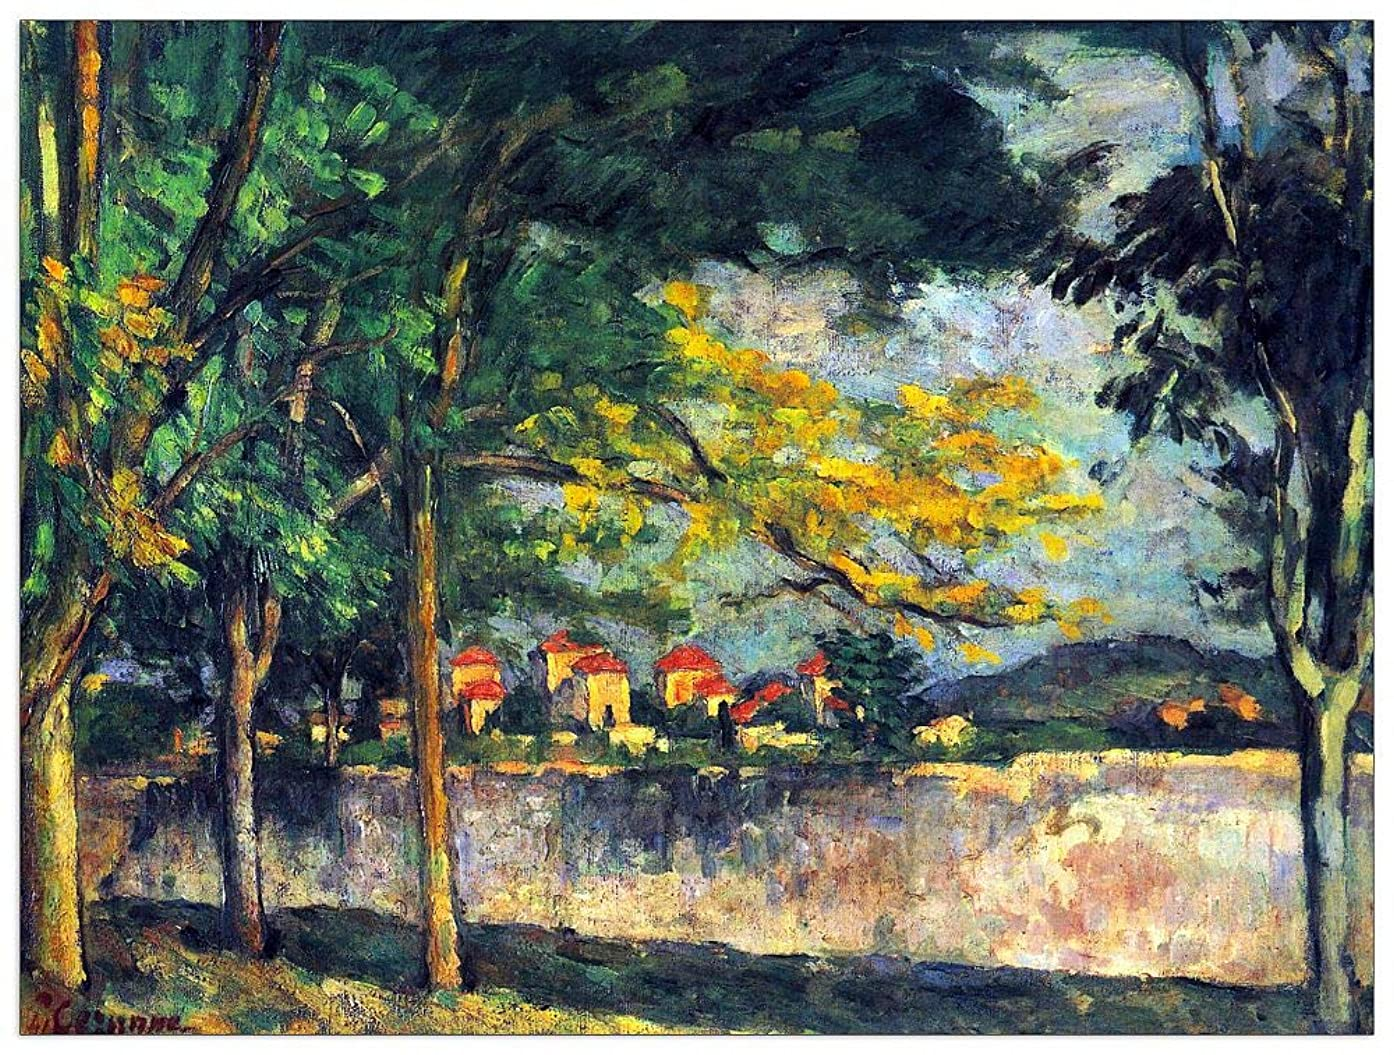 ArtPlaza TW92122 Cezanne Paul - Into Street Decorative Panel 35.5x27.5 Inch Multicolored